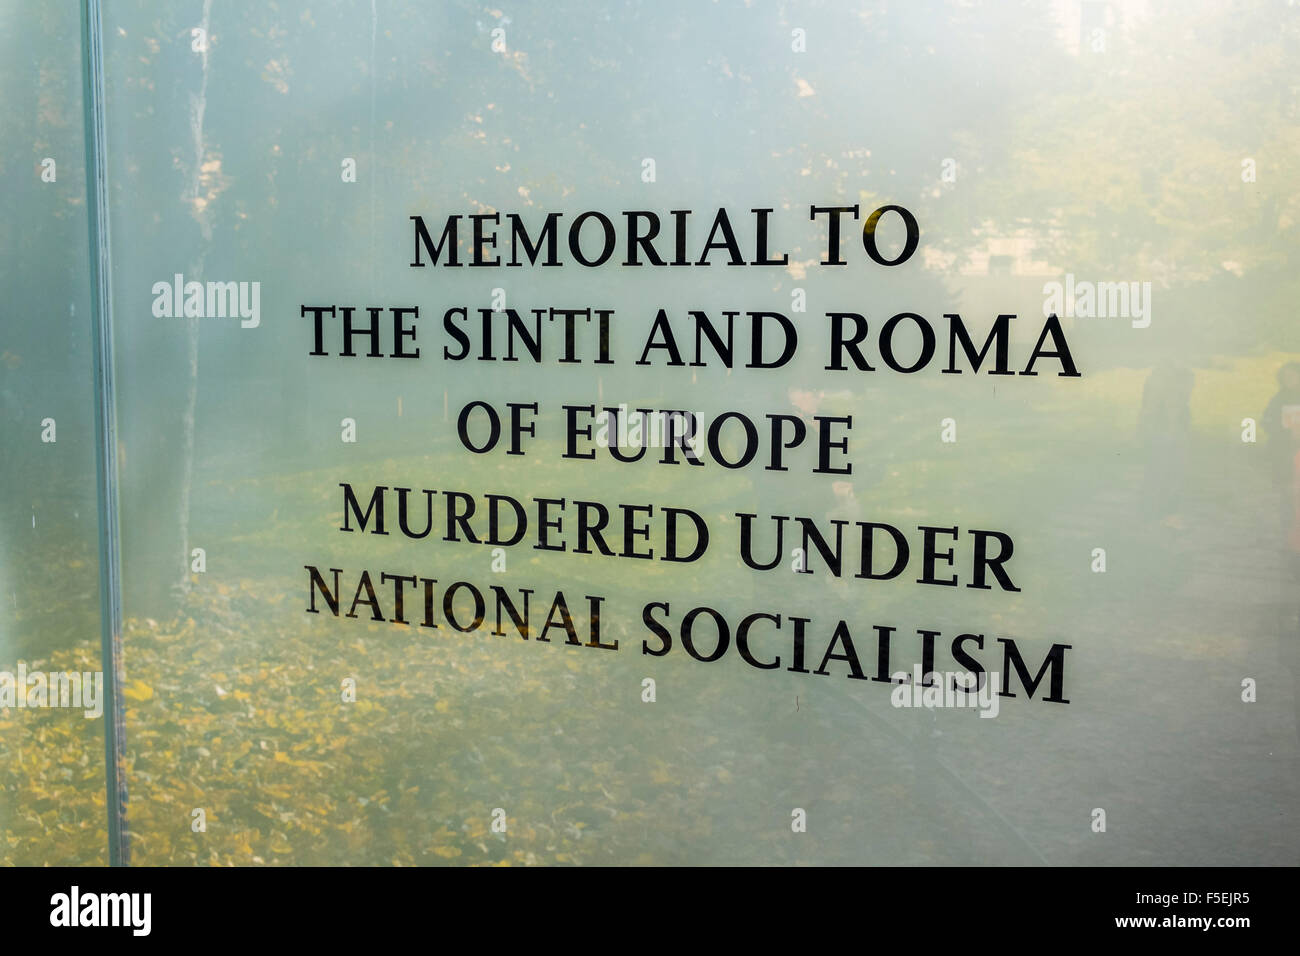 Memorial to Murdered Sinti and Roma People, Mitte, Berlin, Germany Stock Photo